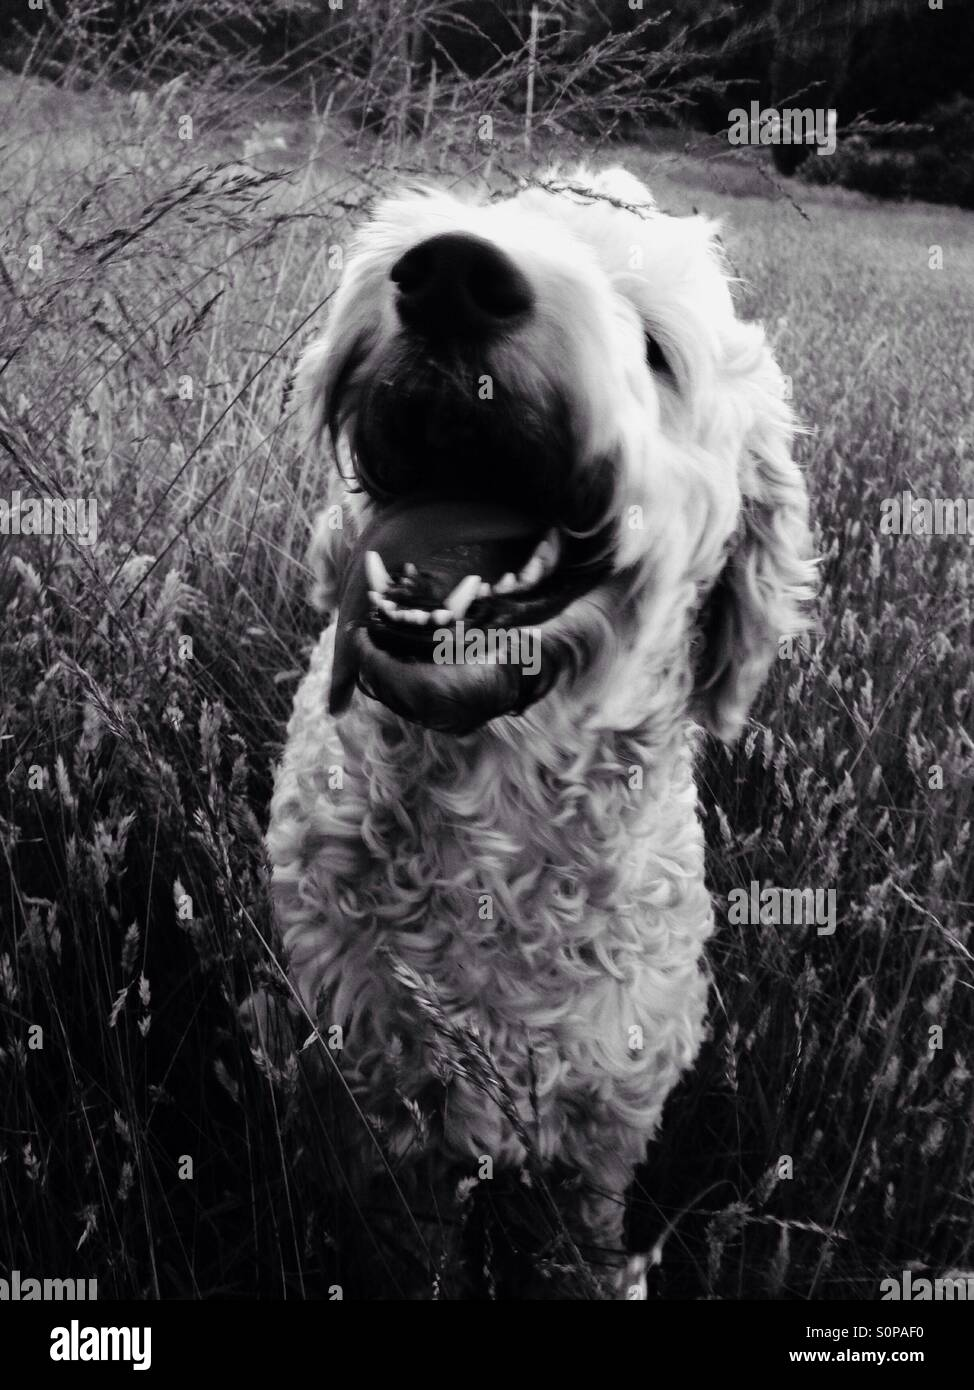 Black and white photo of a smiling dog in the field - Stock Image